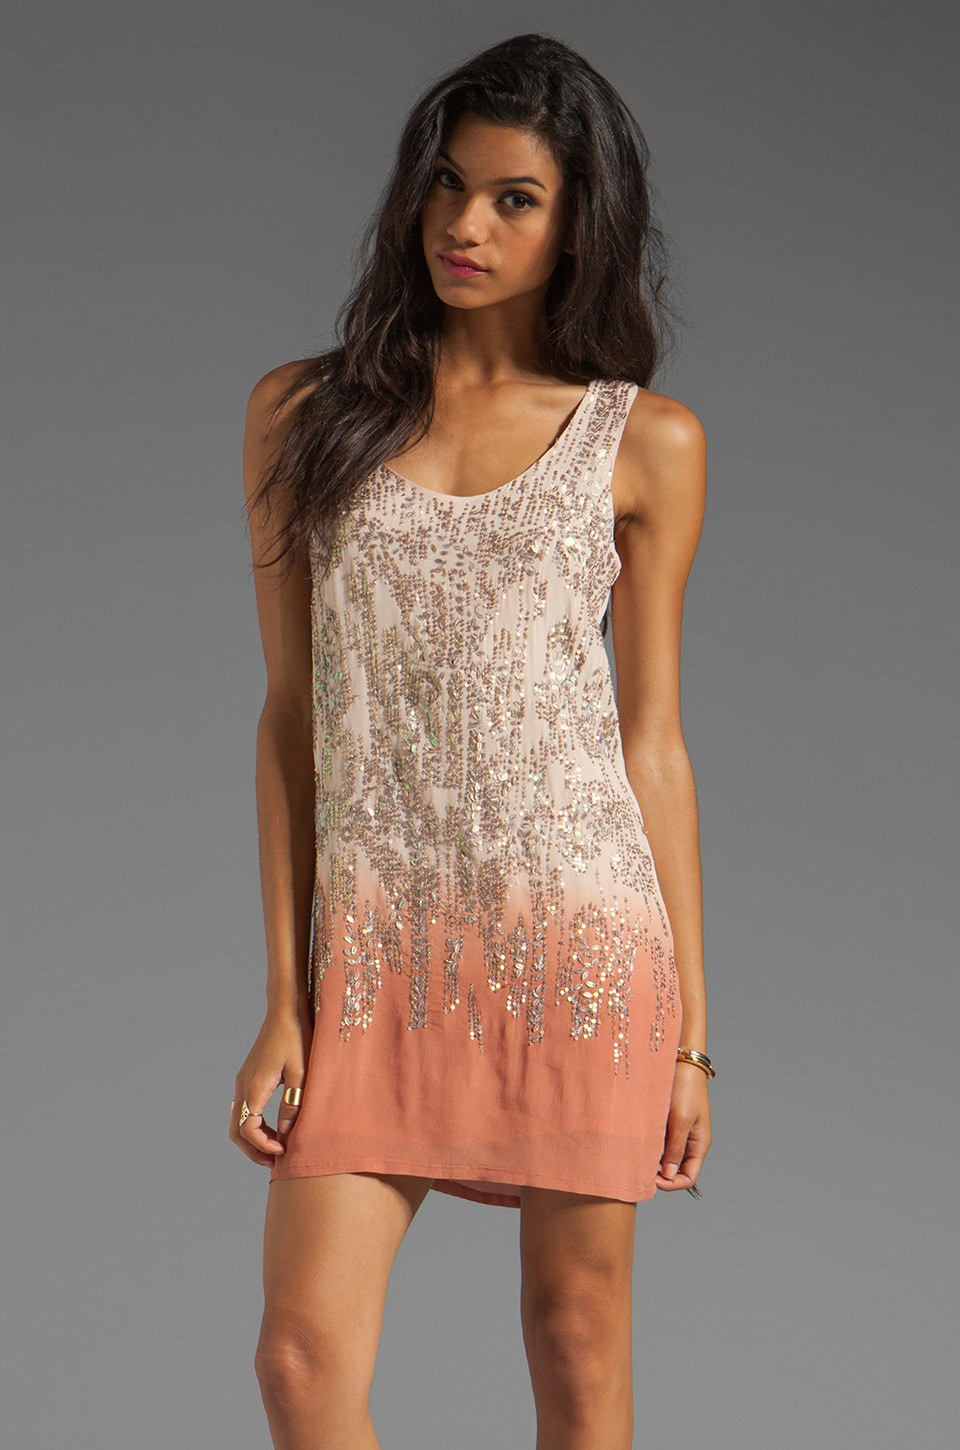 HEARTLOOM Kat Dress in Blush